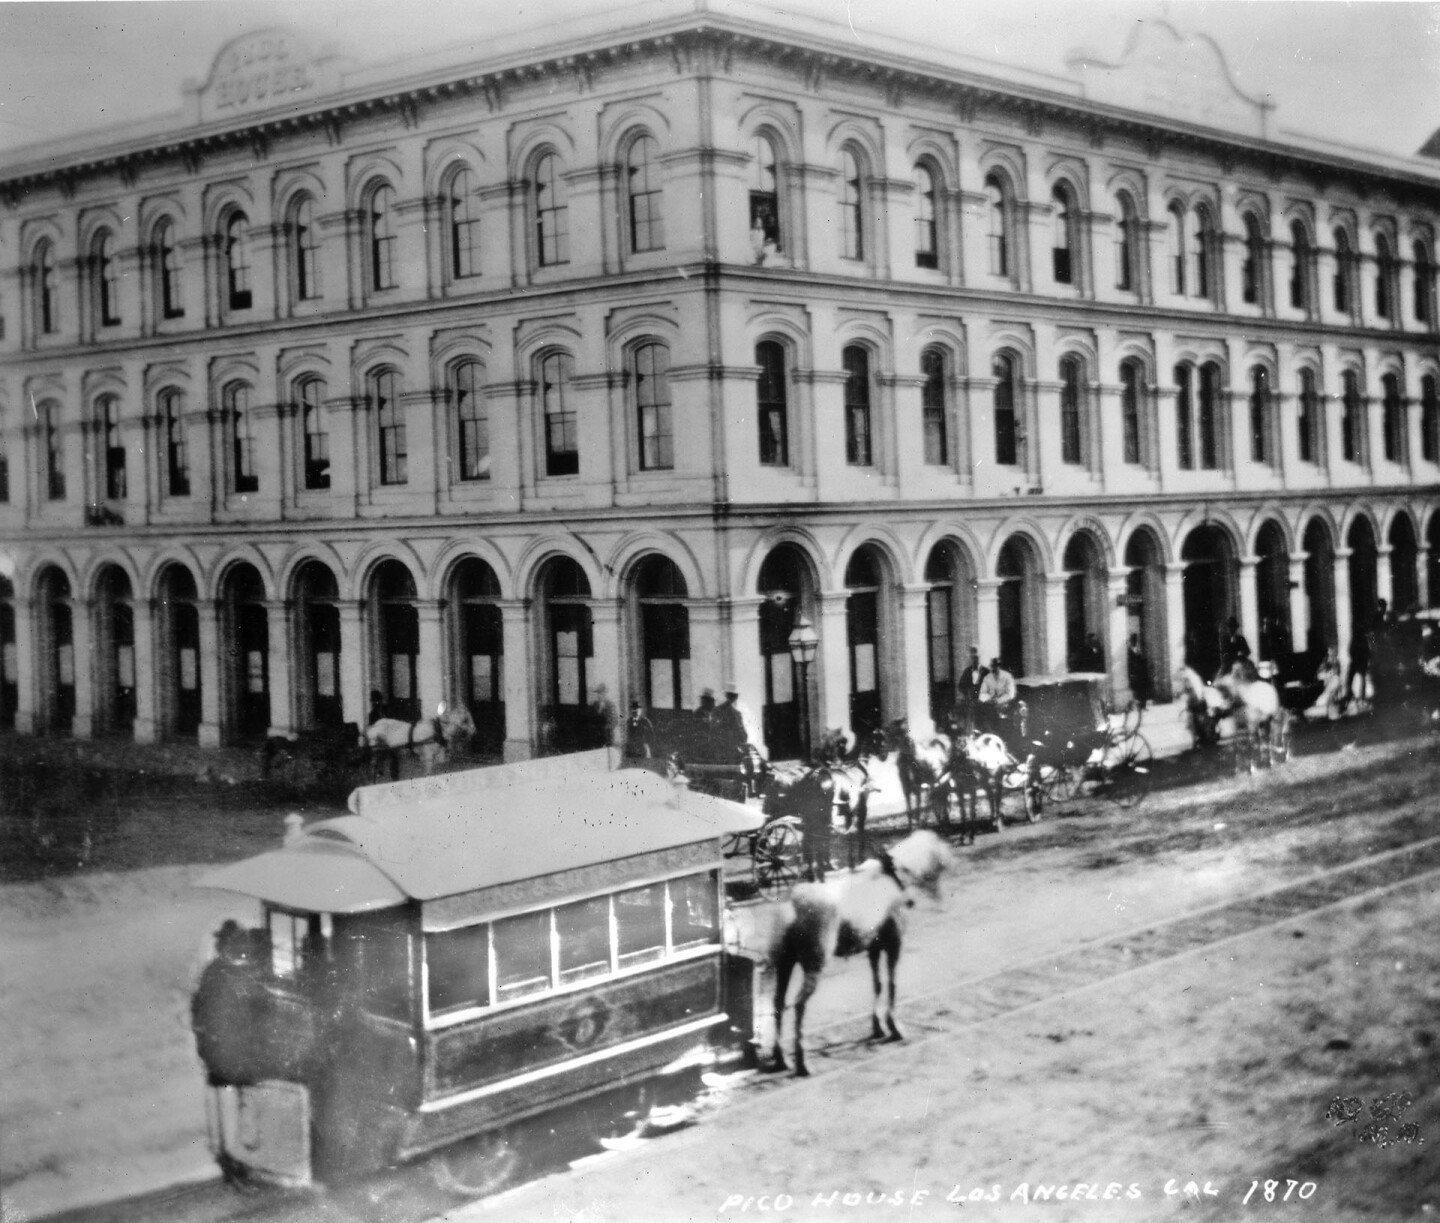 A horse-drawn streetcar of the Spring & Sixth railway in front of the Pico House. Courtesy of the Title Insurance and Trust, and C.C. Pierce Photography Collection, USC Libraries.